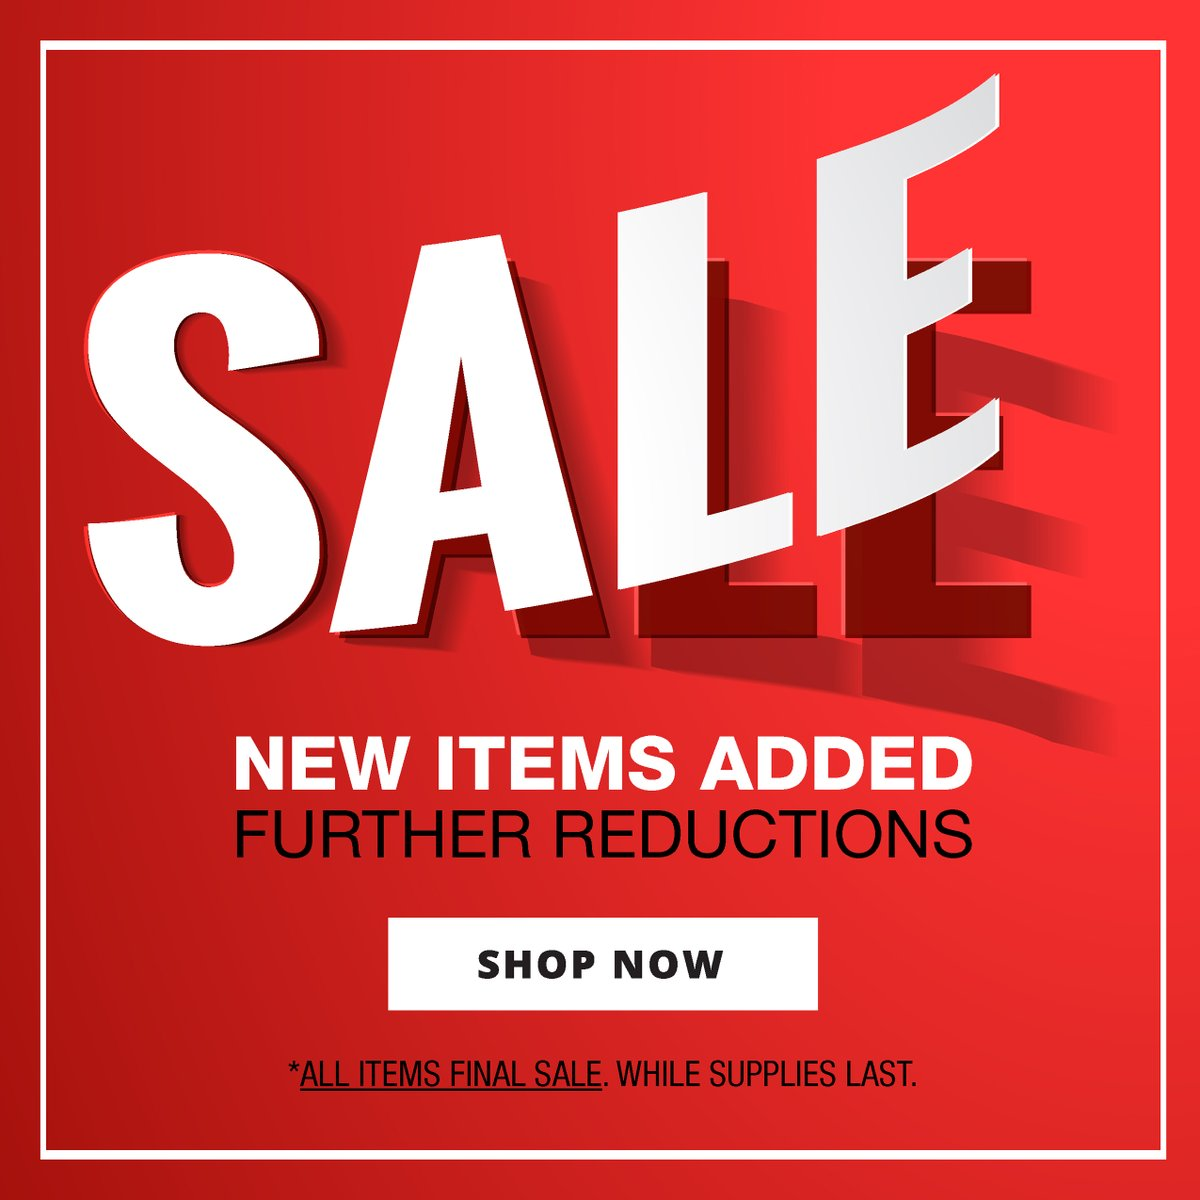 CLEARANCE: NEW ITEMS ADDED! Shop in-stores & online now! | https://bit.ly/3dXesCW  #Clearance #Sale #FinalSale #ShopNow #Online #Boutique #Reduction #Toronto #StJacobs #Mississauga #WomensFashion #Accessories #Clothing #Love #Fashionpic.twitter.com/ga0ItwpVIs